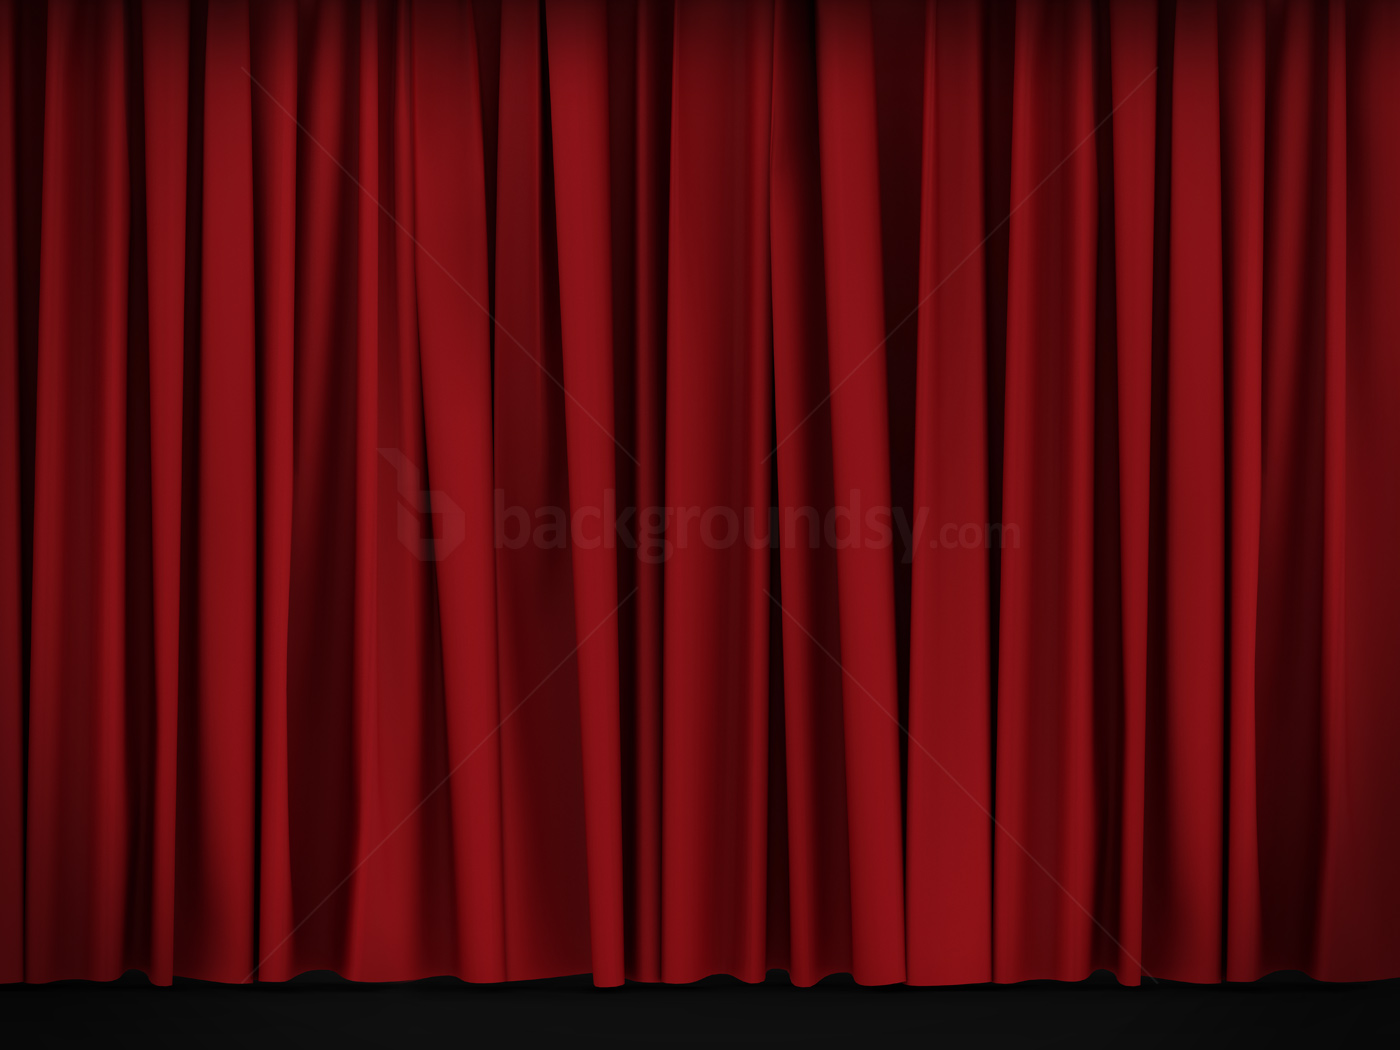 wallpapers red curtain background - photo #15